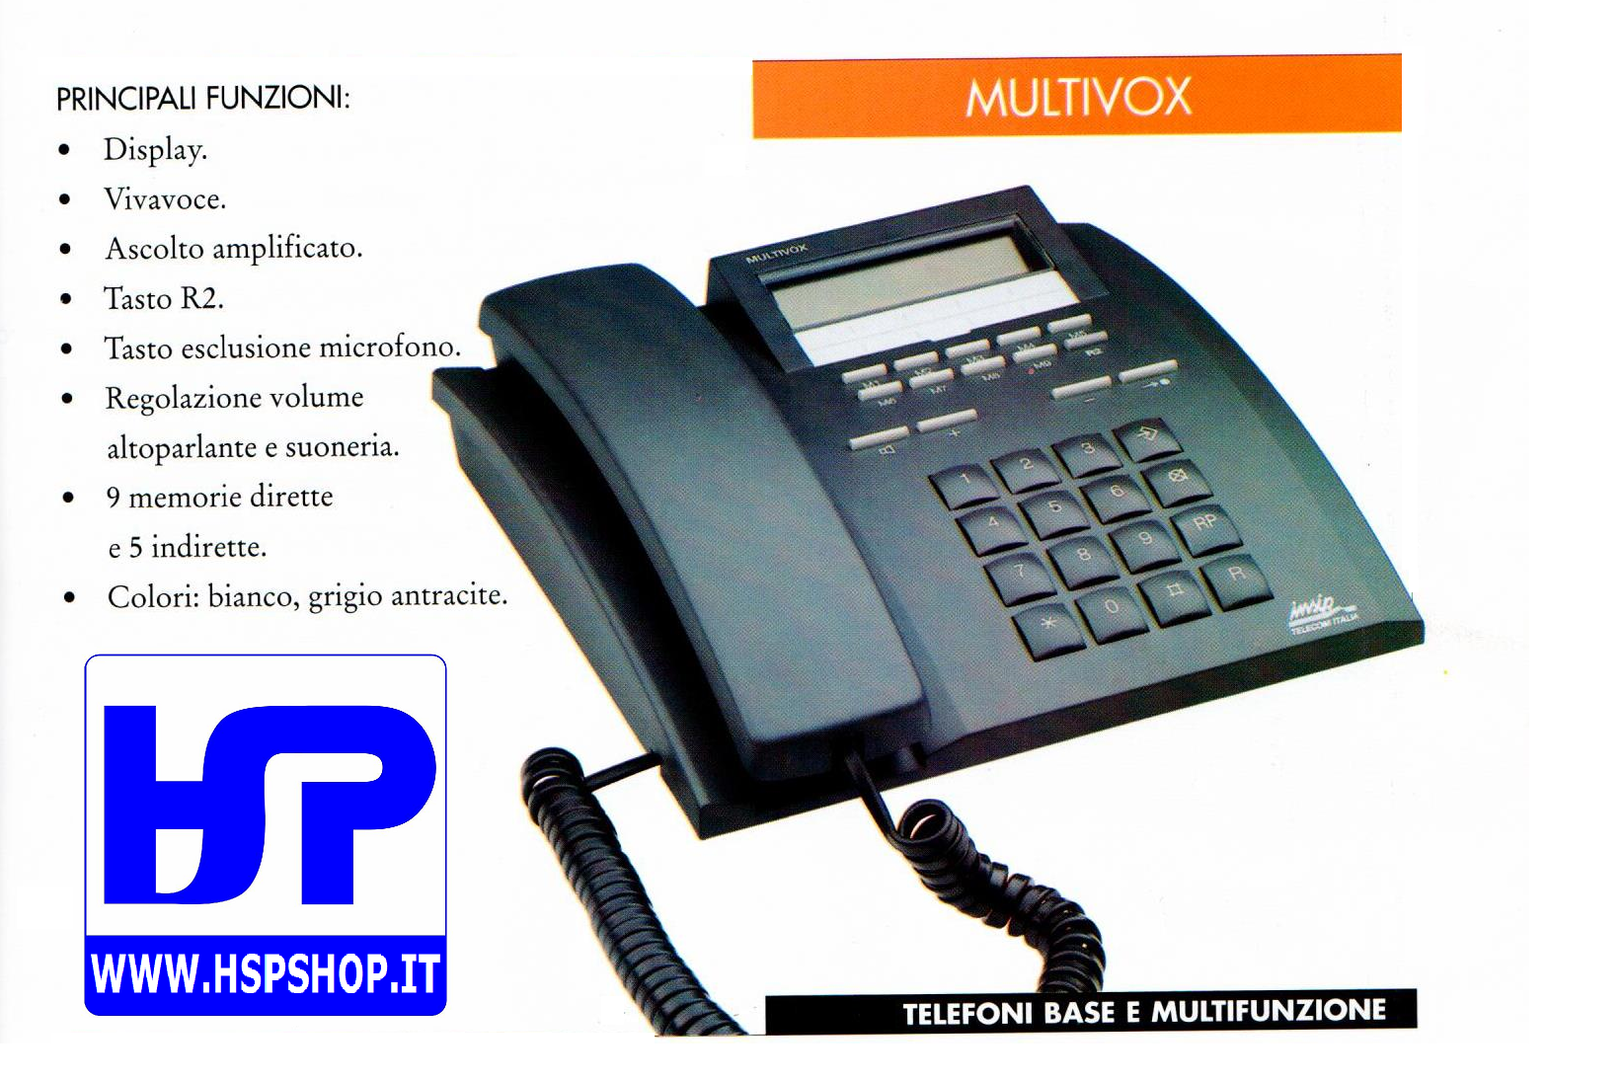 INSIP - MULTIVOX - MULTI-FUNCTIONS TELEPHONE